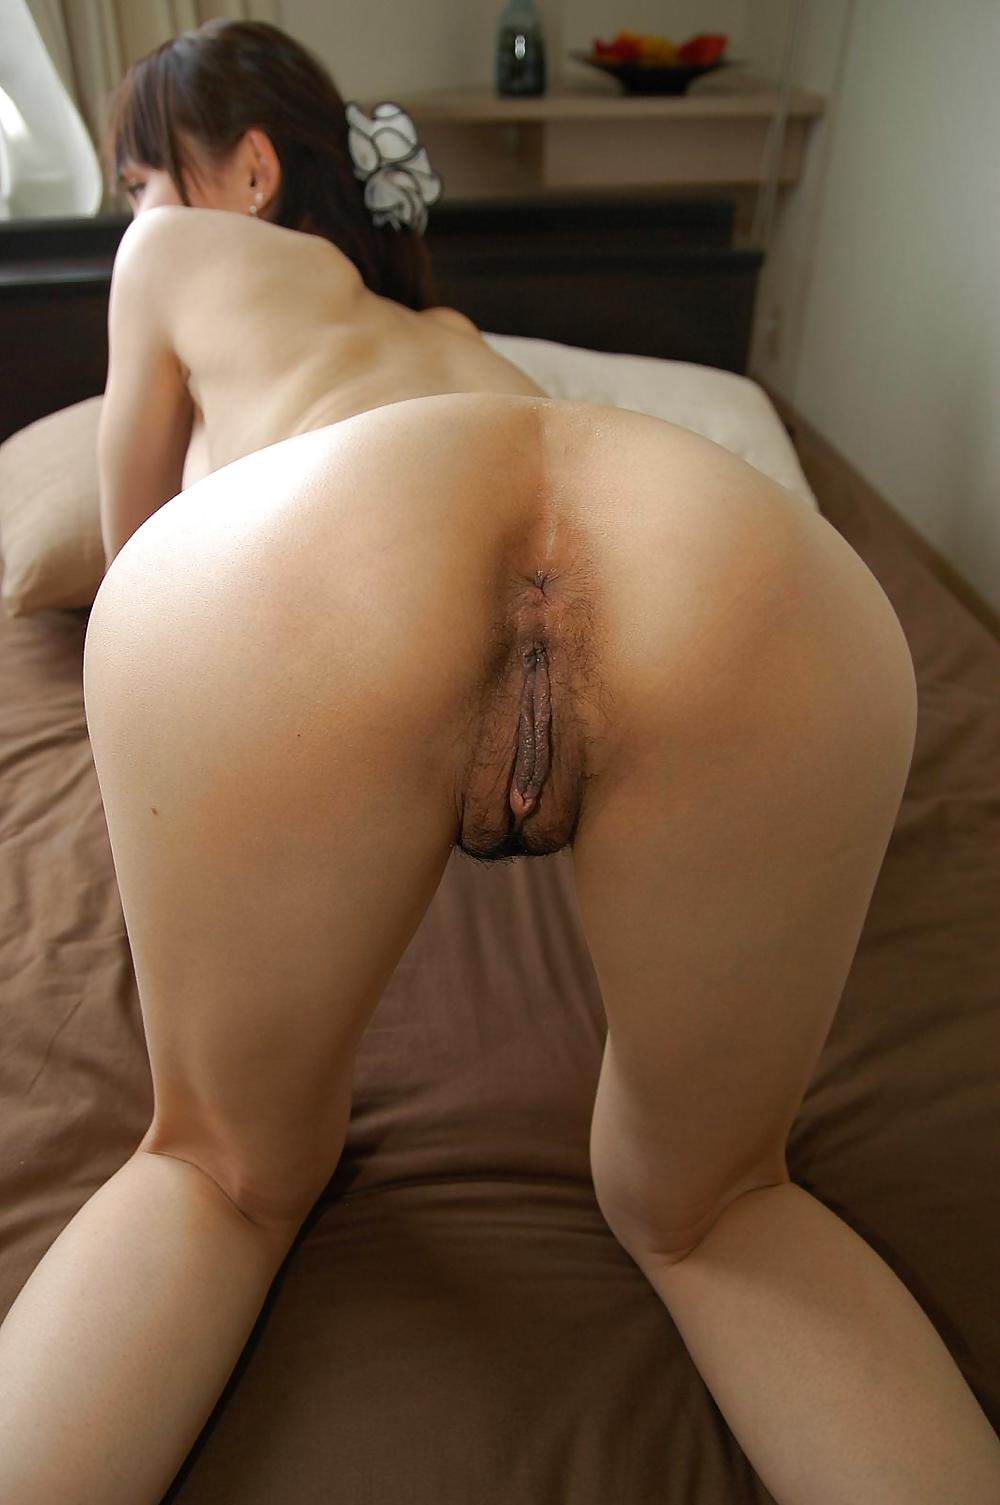 anal at freeones